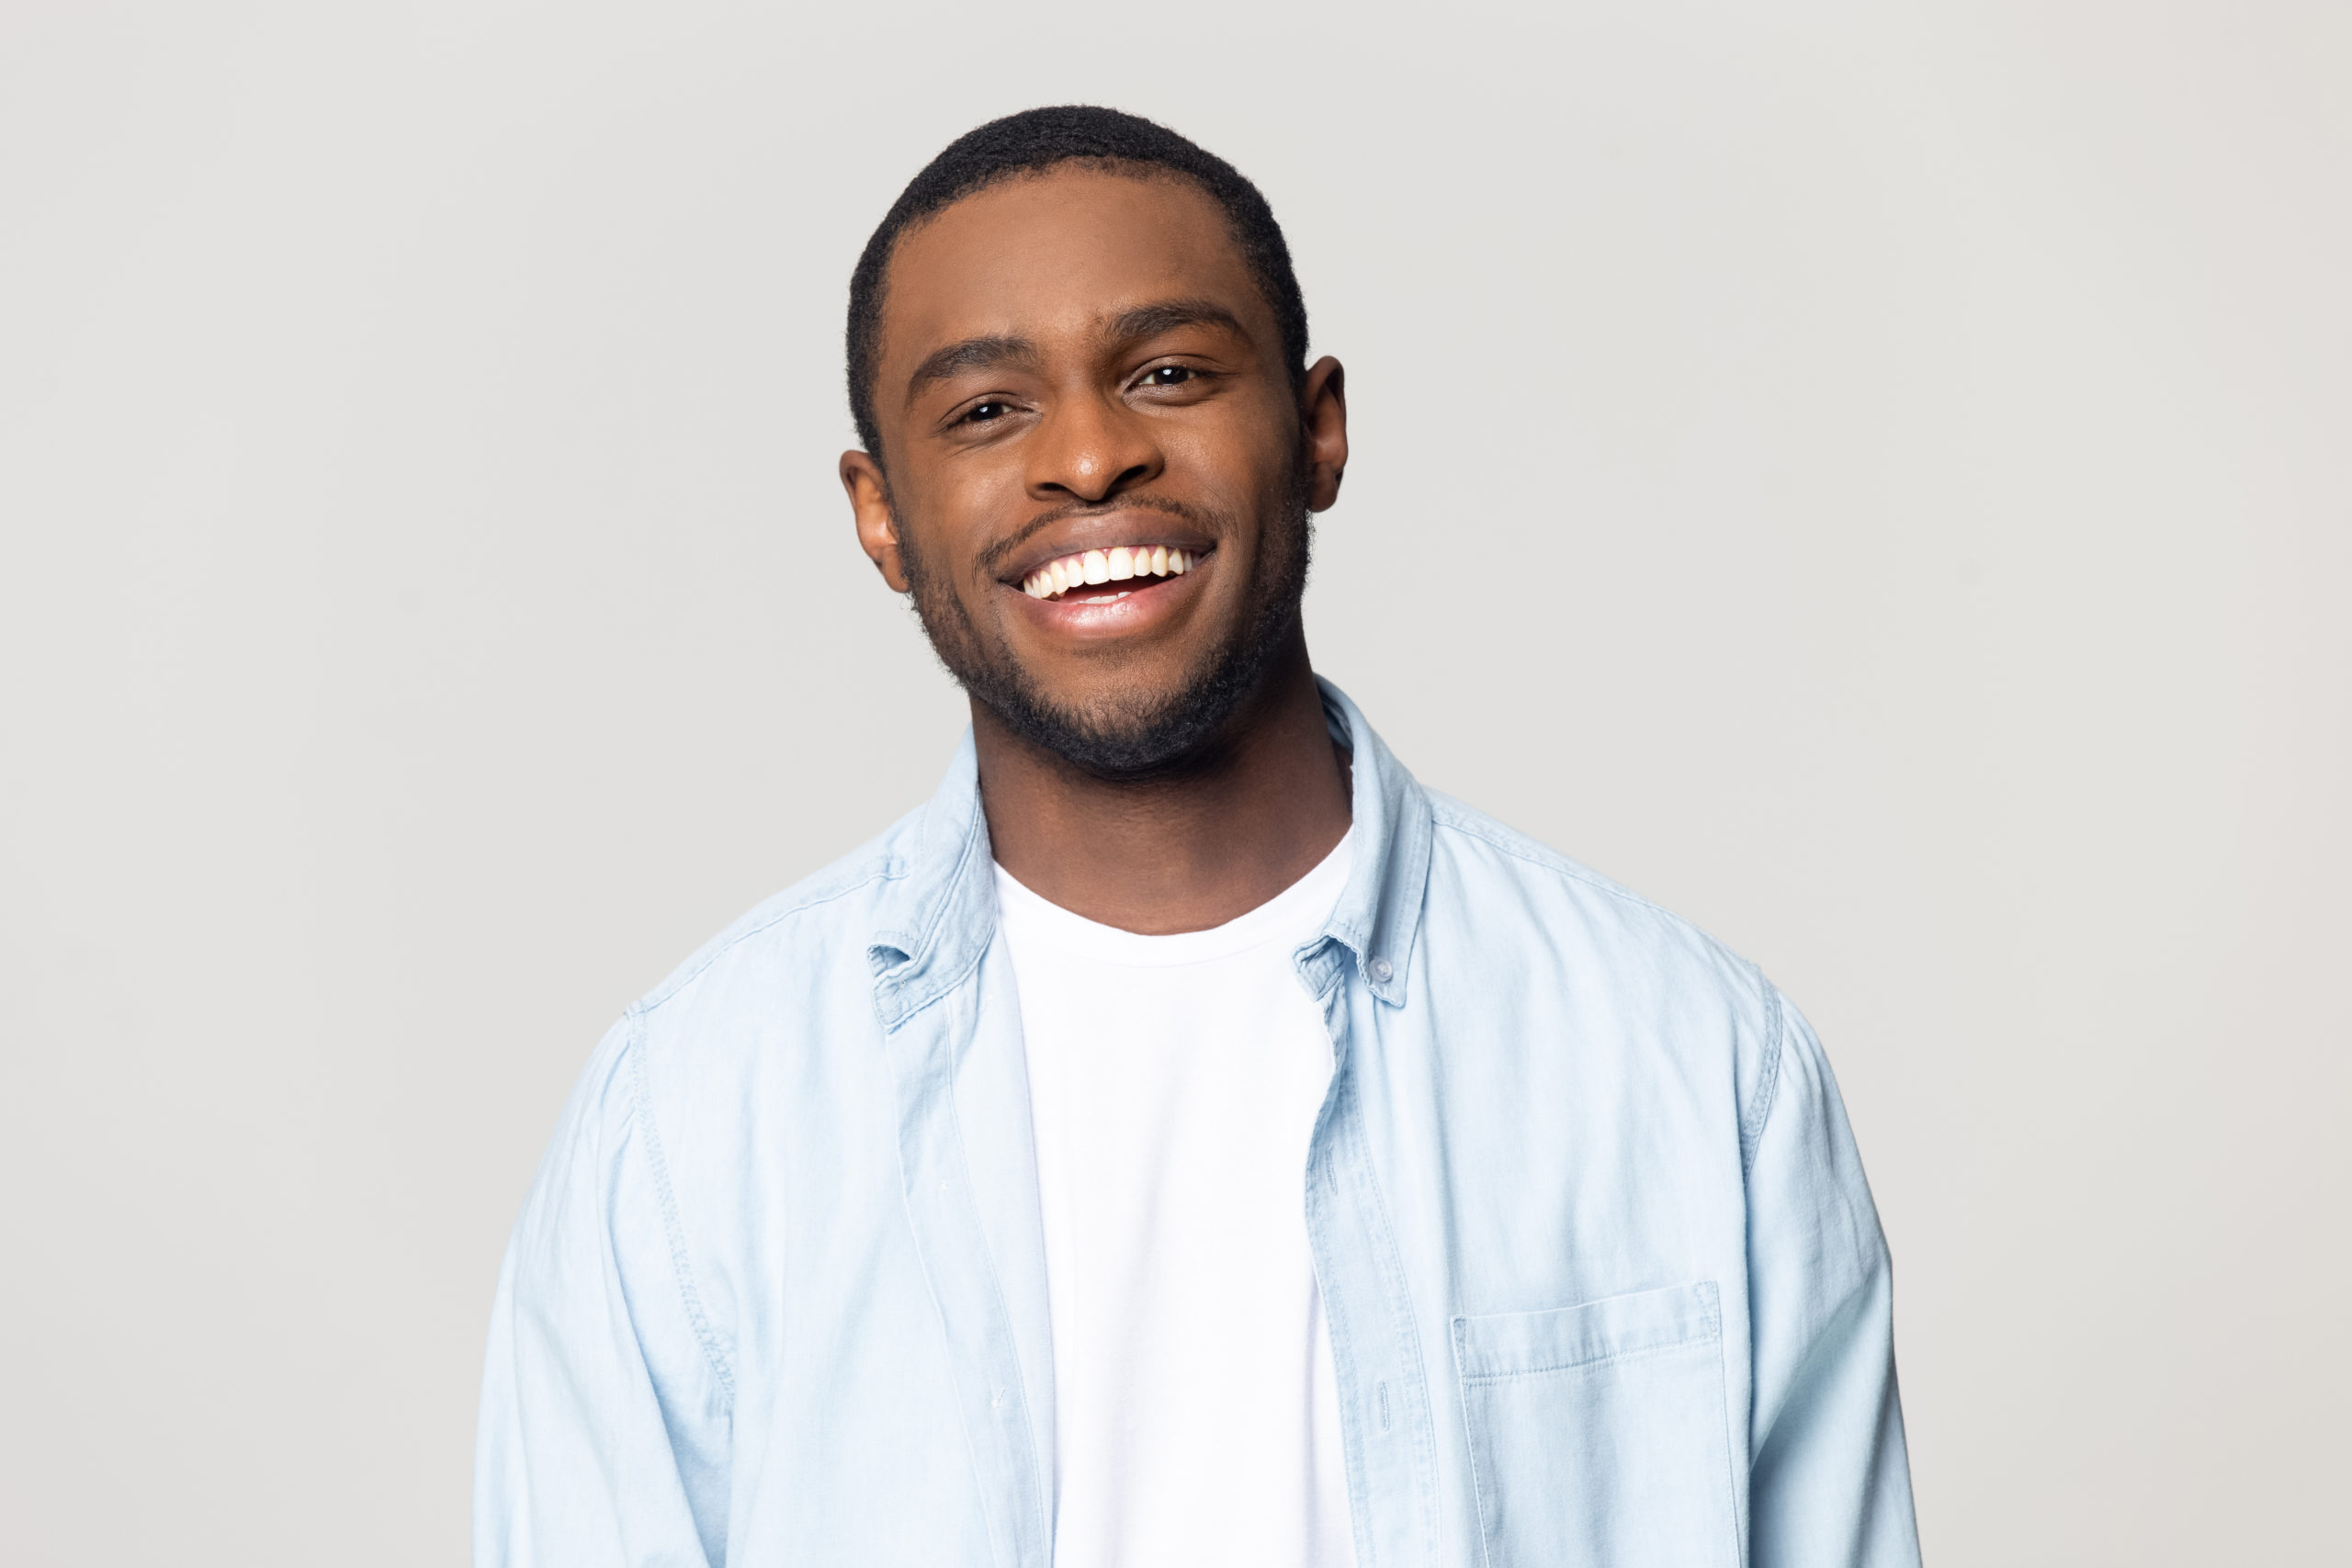 Head shot portrait happy African American man with wide healthy smile, satisfied client customer looking at camera, handsome young male feeling positive, isolated on grey background